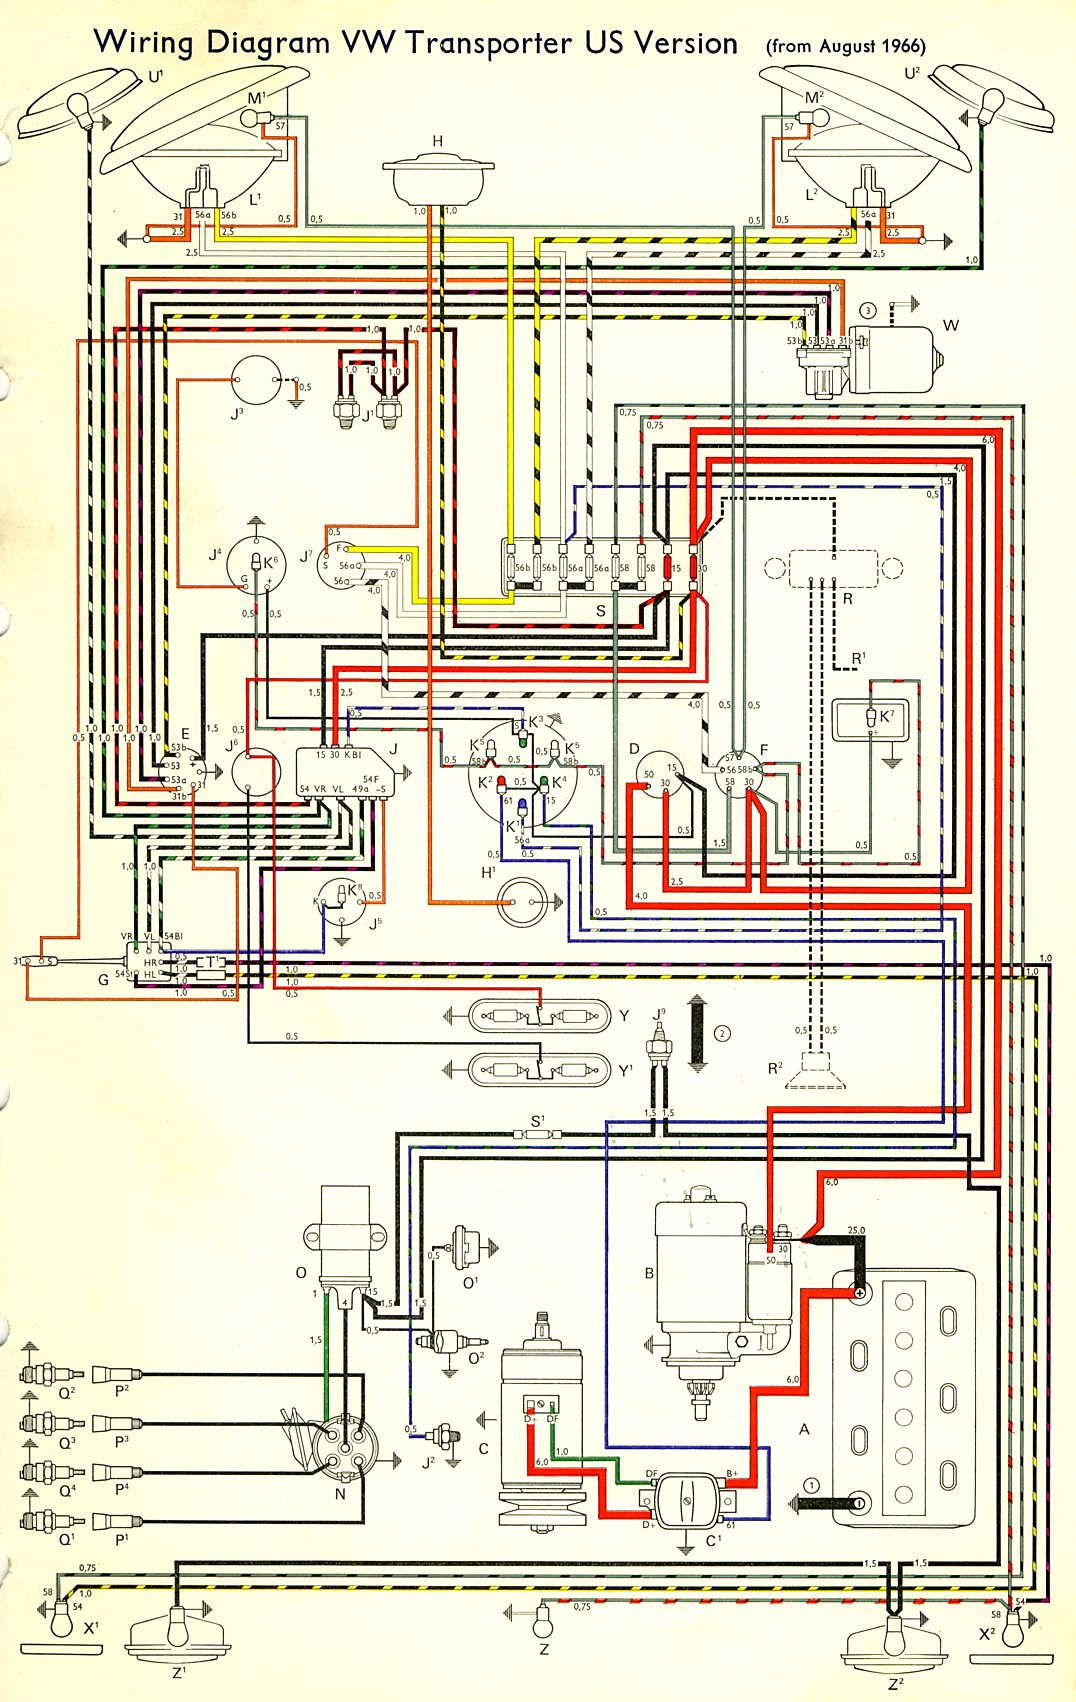 thesamba com type 2 wiring diagrams rh thesamba com School Bus Air Brake System Diagram School Bus Diagram